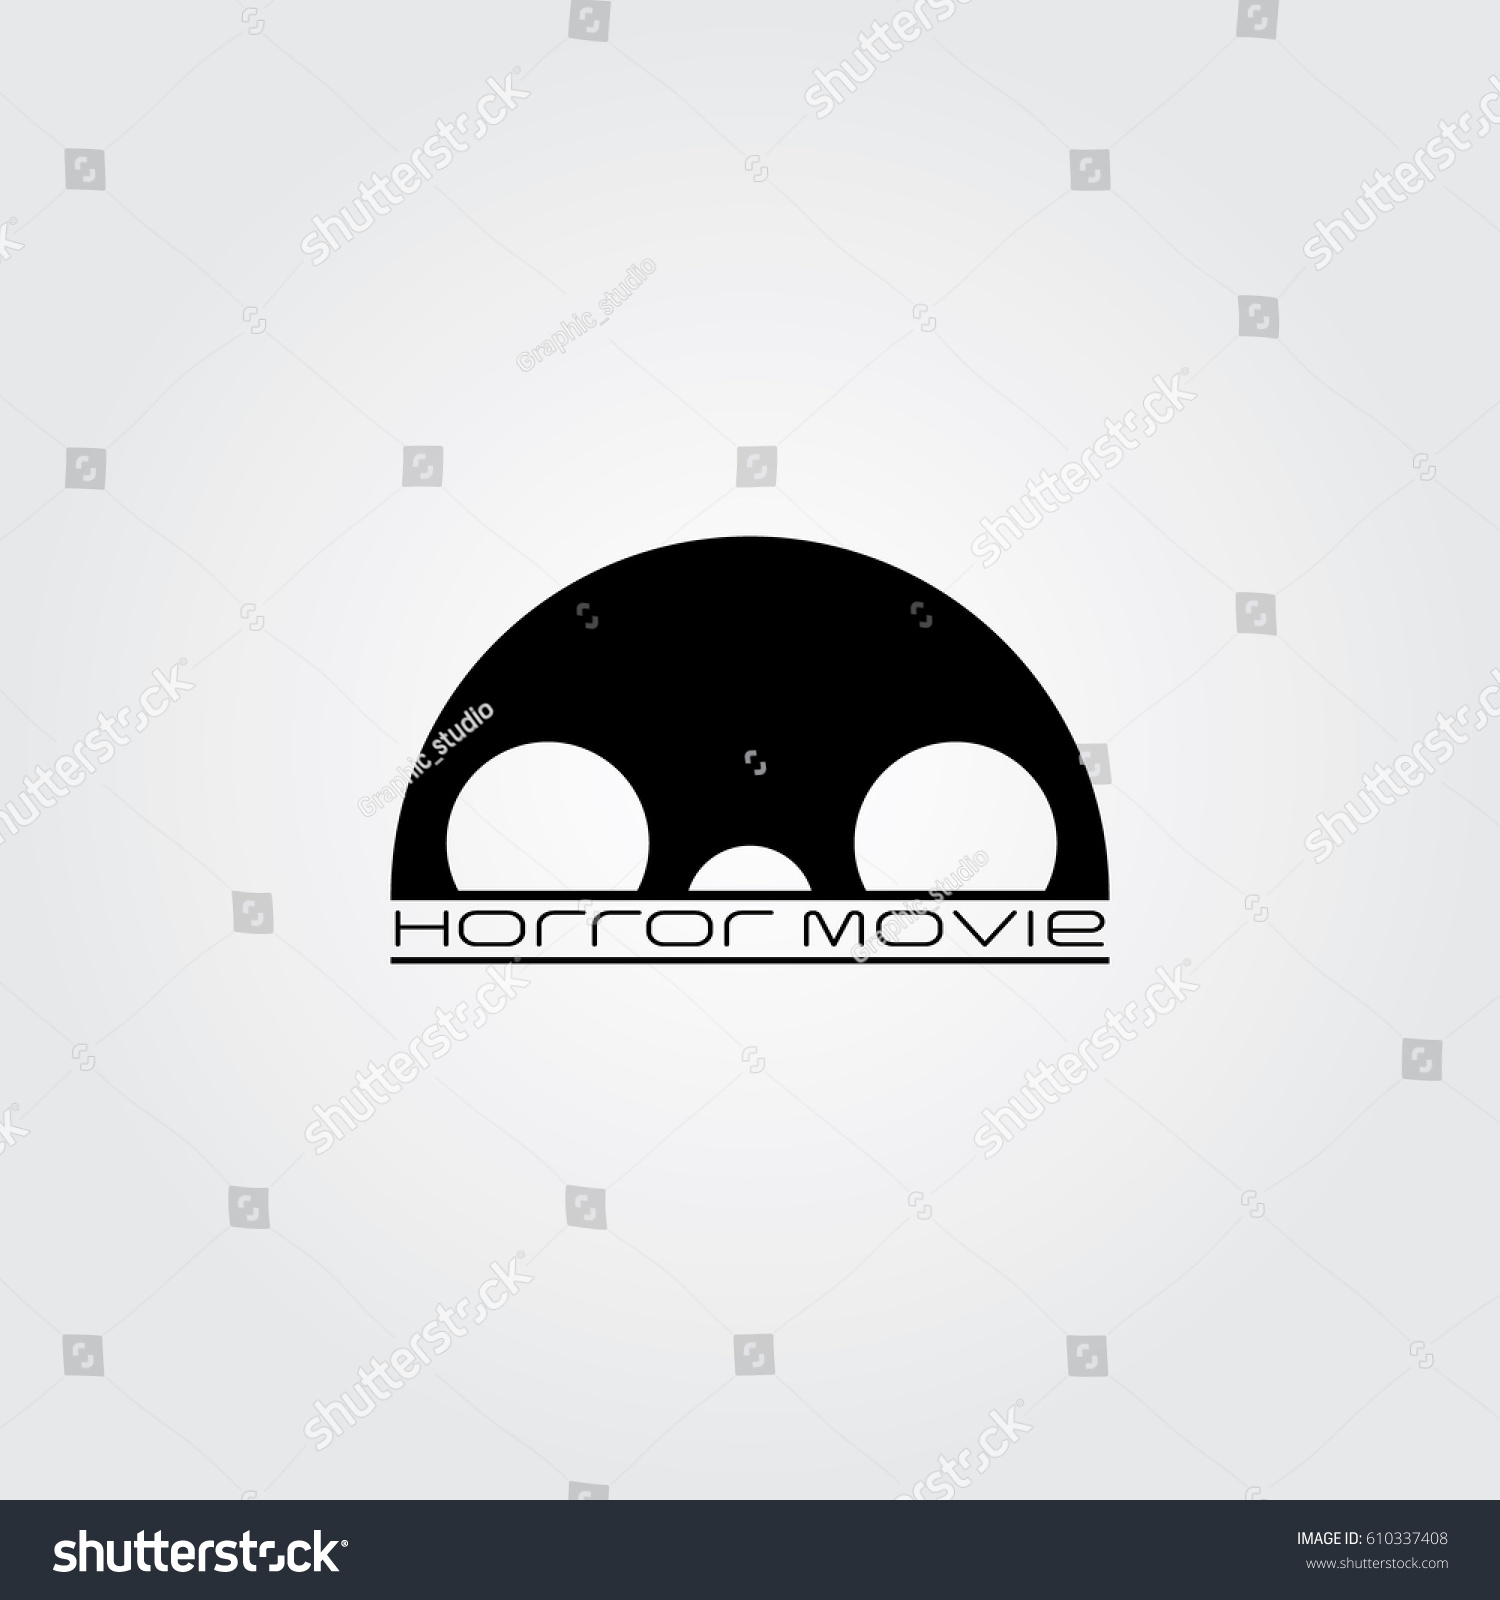 Creative logo design movie television industry stock vector creative logo design for movie and television industry unique symbol template with film roll biocorpaavc